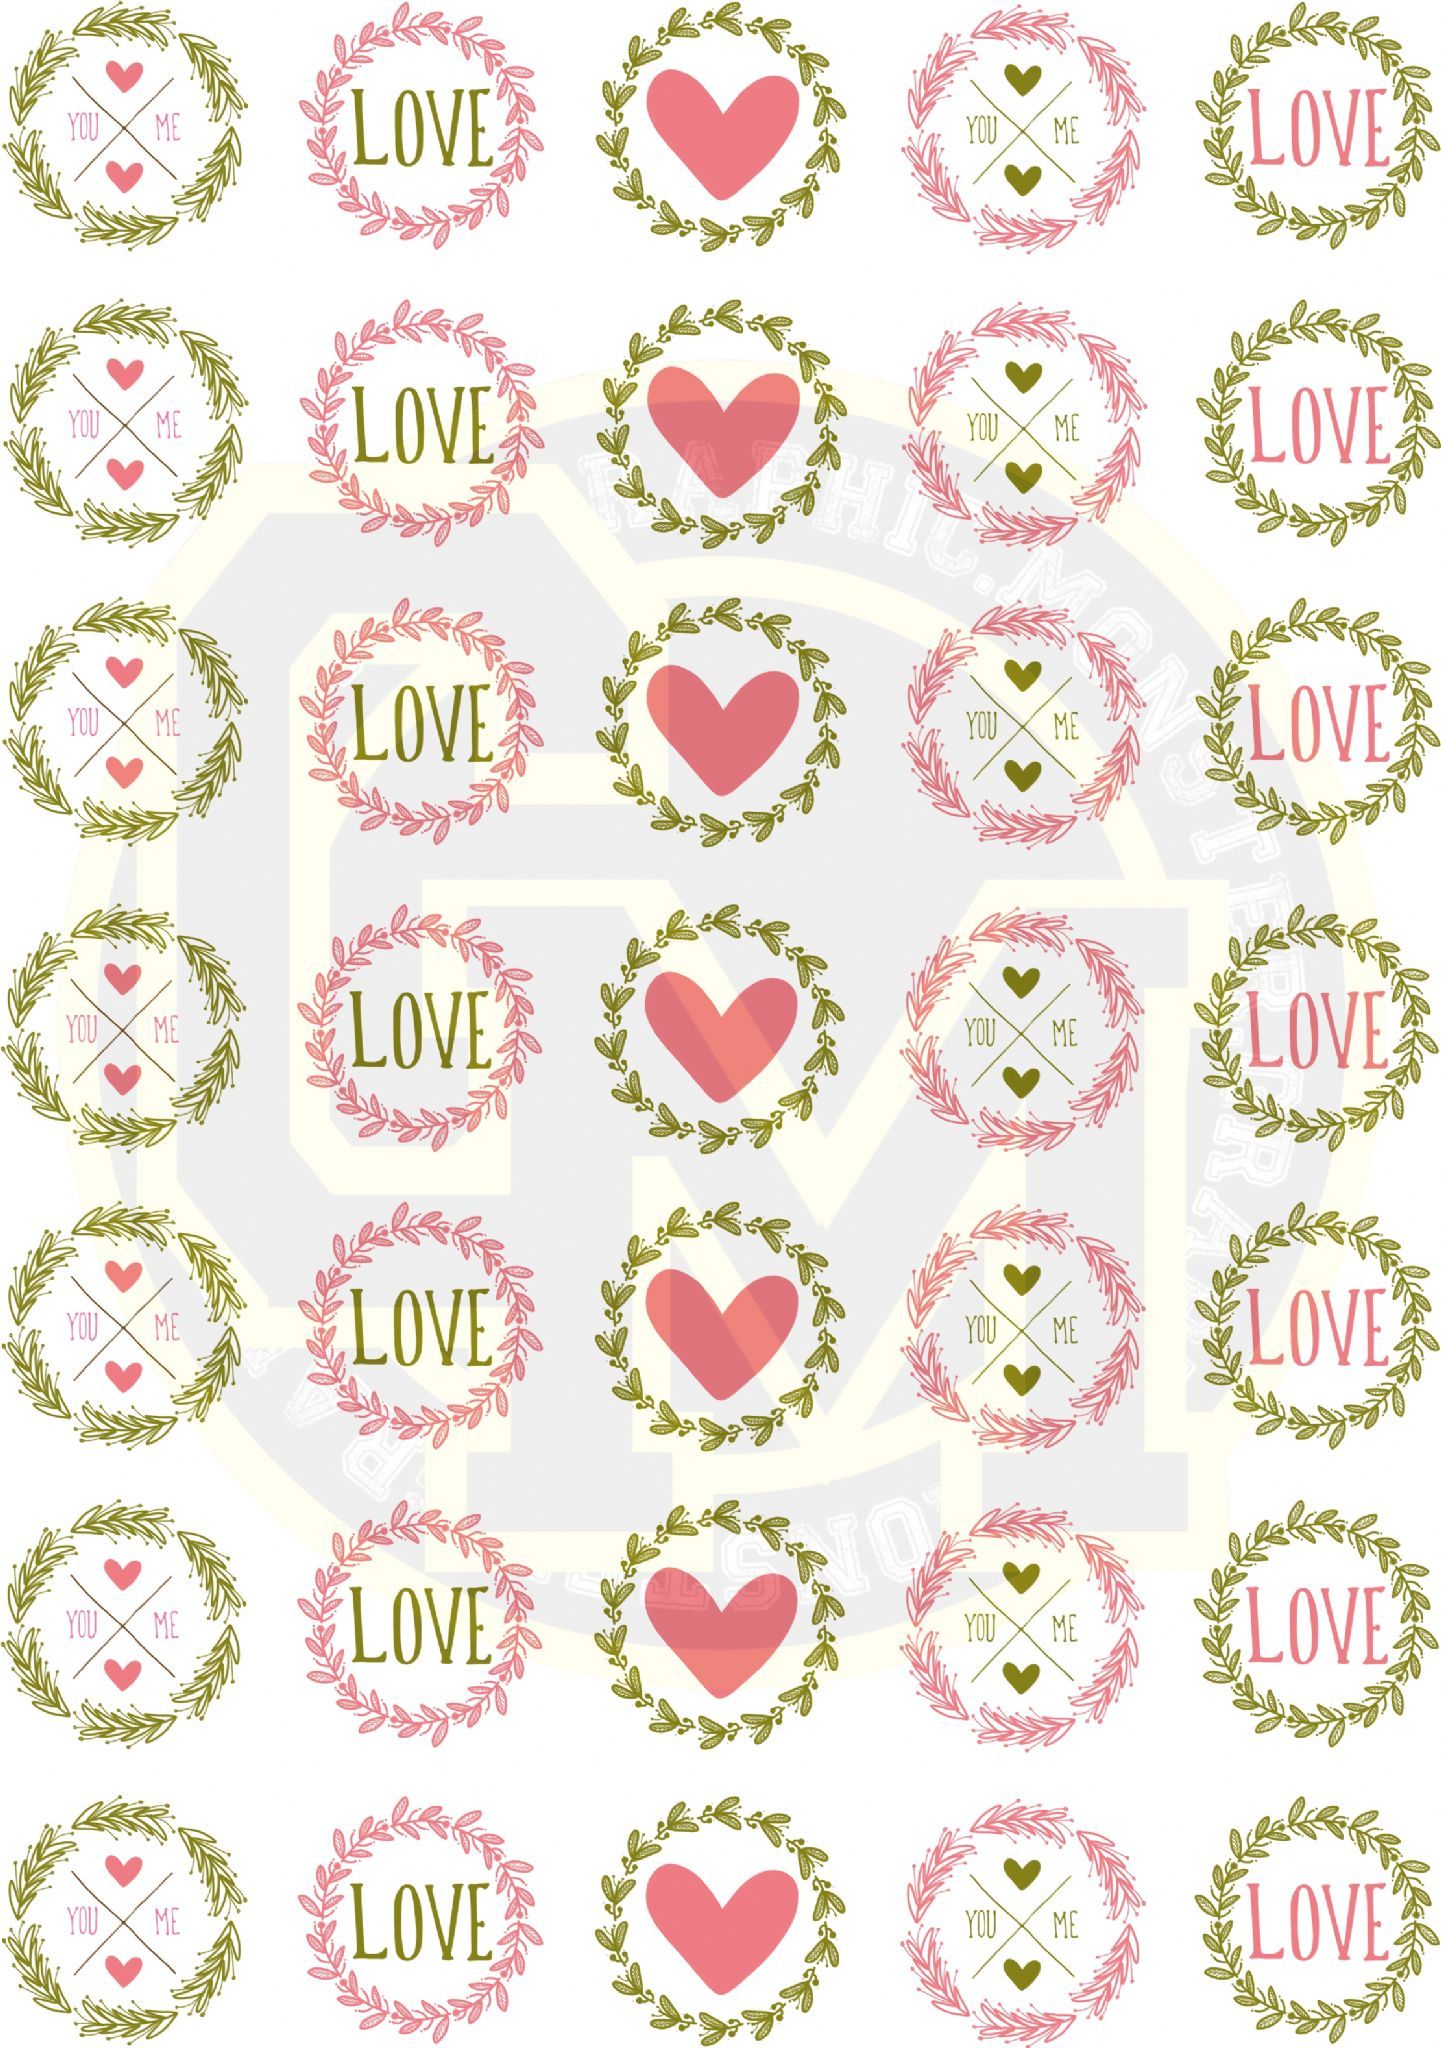 Love Heart Stickers 37mm Round Beautiful Floral Text Detail Wedding ...